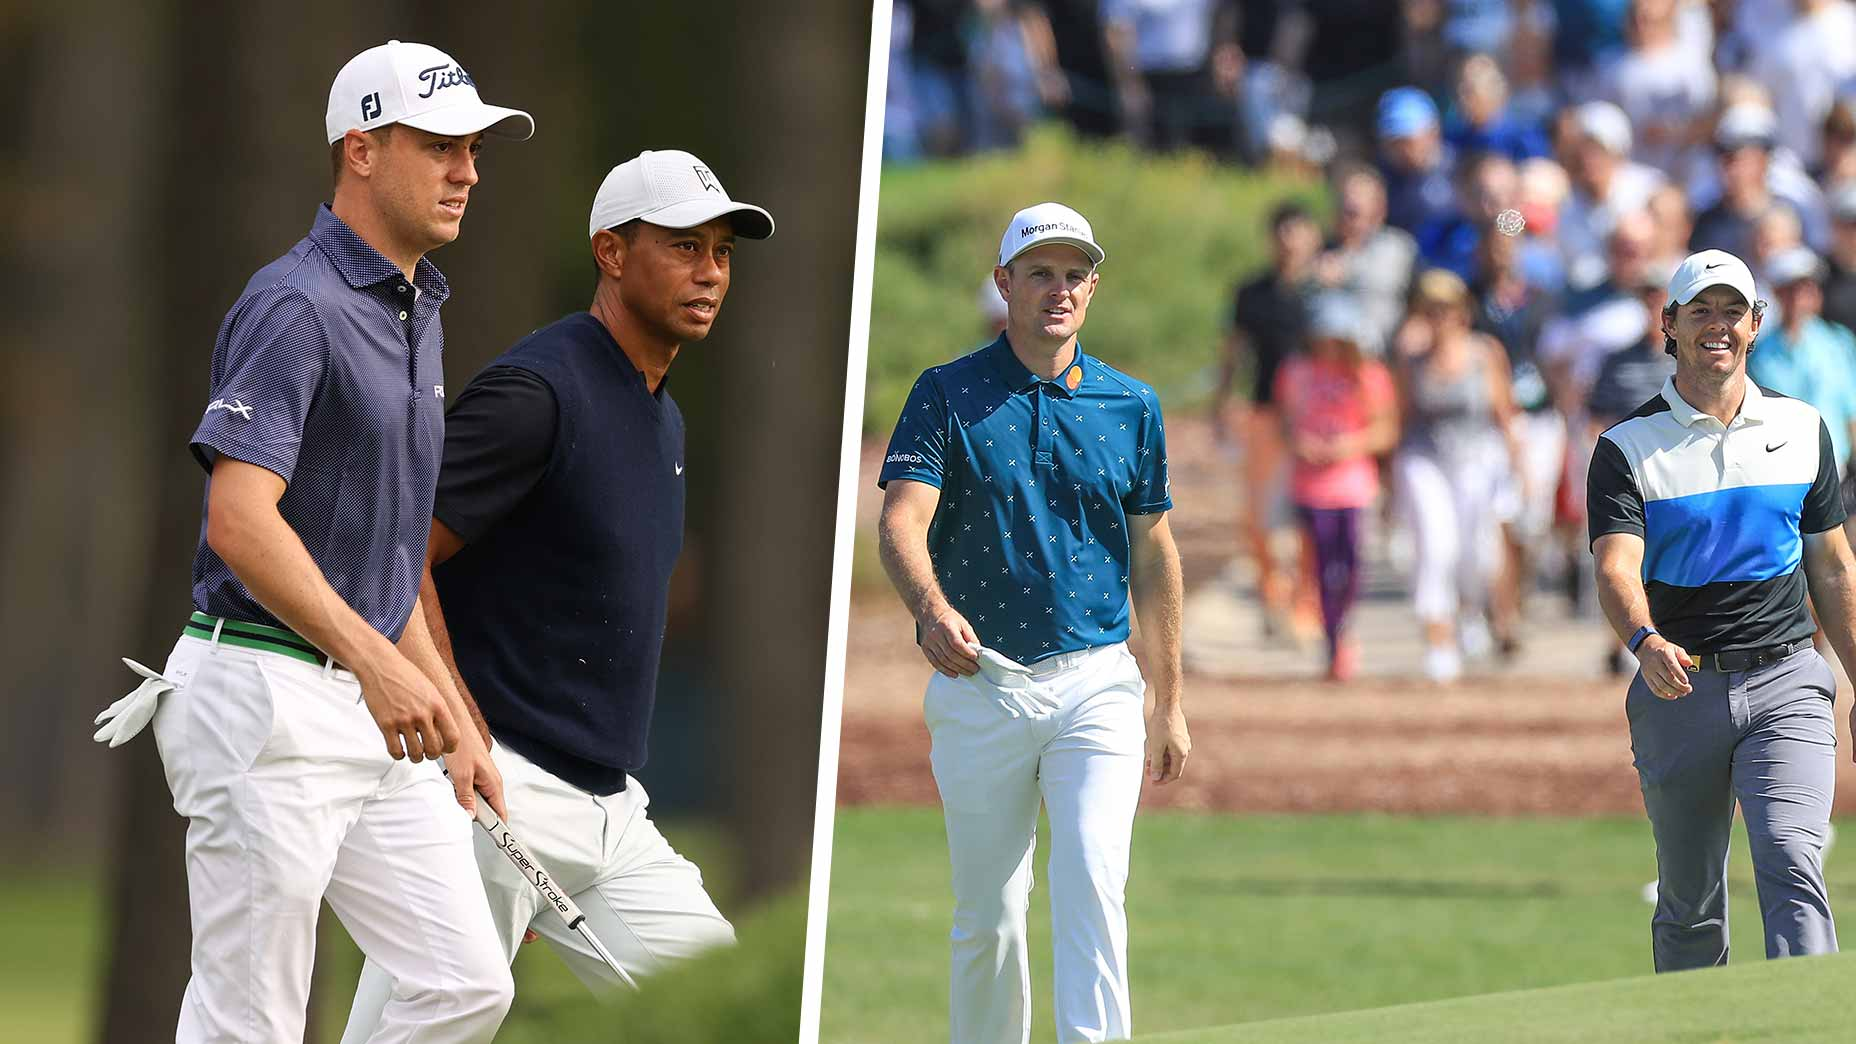 tiger justin thomas rory mcilroy justin rose walking